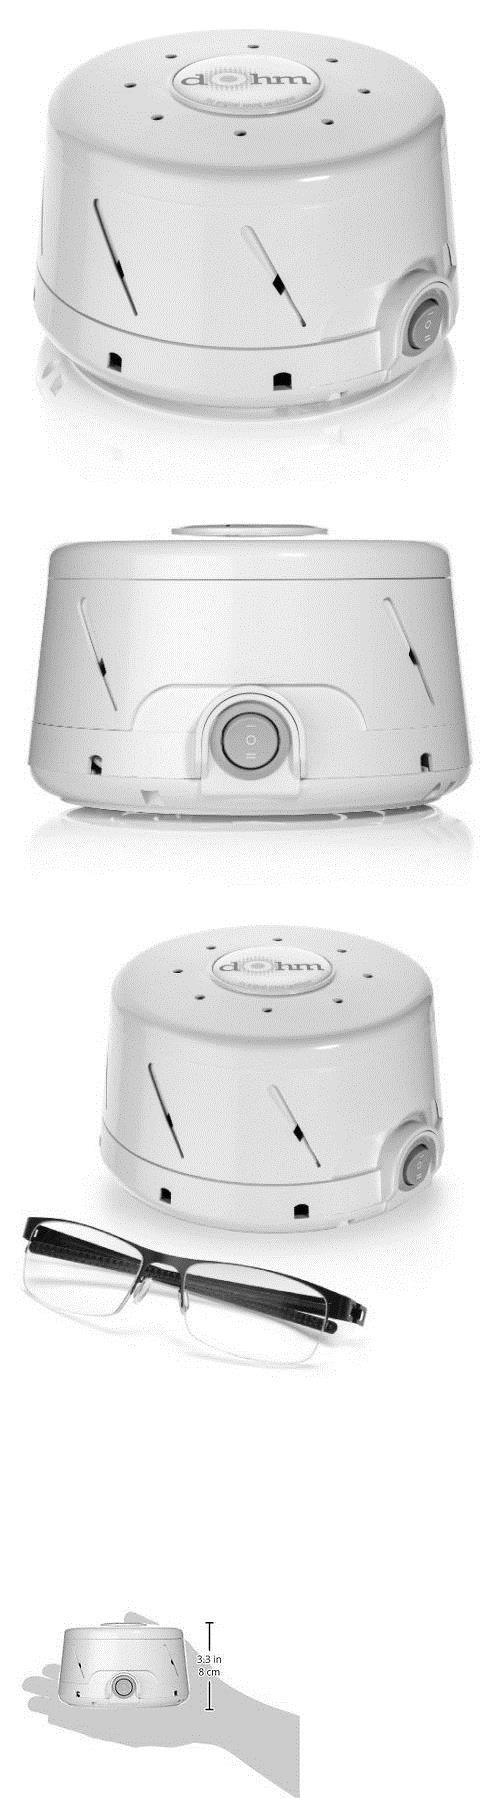 Sound Therapy: Marpac Dohm-Ds All-Natural White Noise Sound Machine, White -> BUY IT NOW ONLY: $41.98 on eBay!